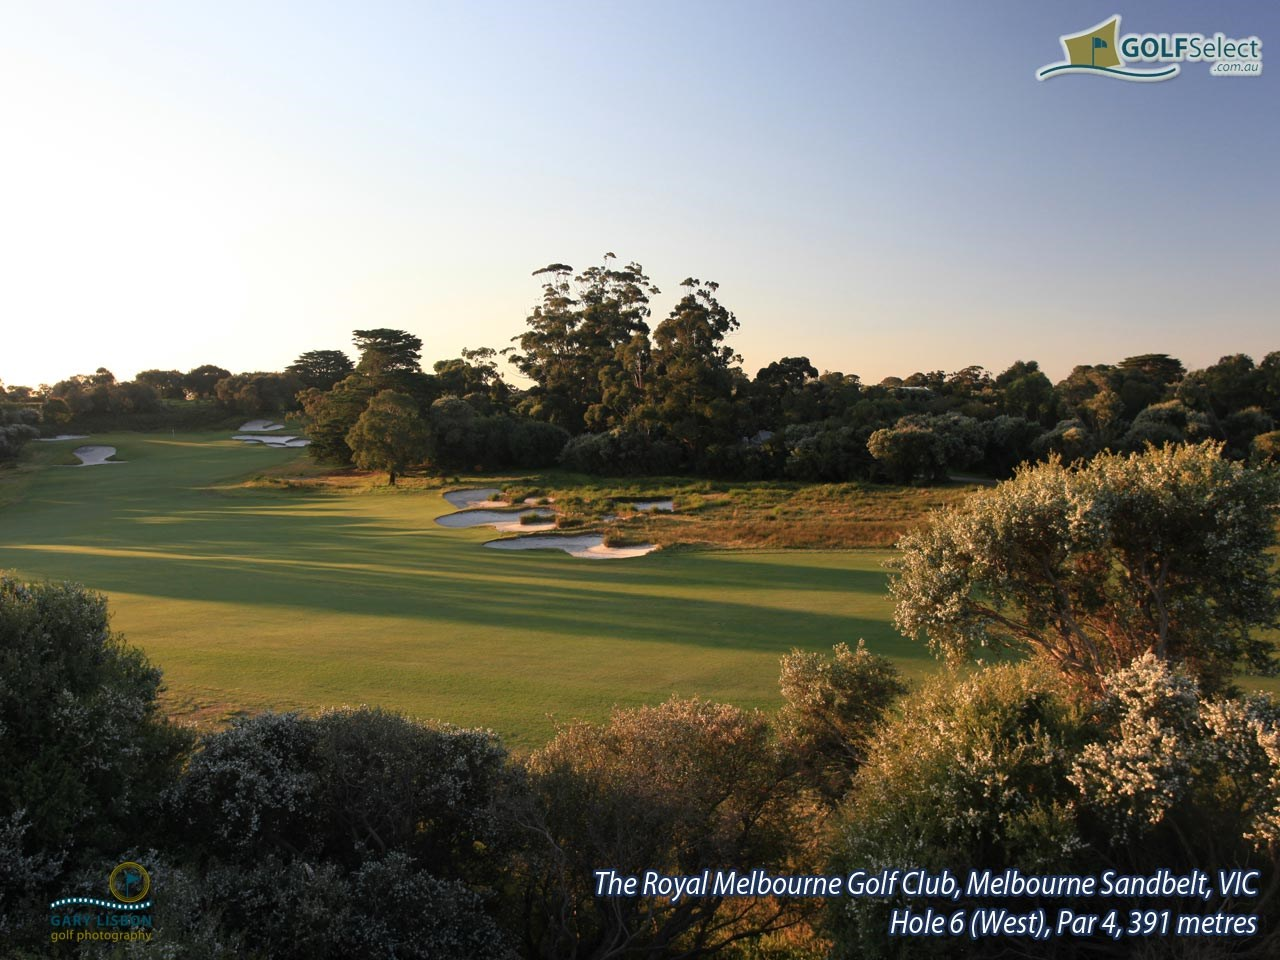 The Royal Melbourne Golf Club (West Course) Hole 6 (West), Par 4, 391 metres